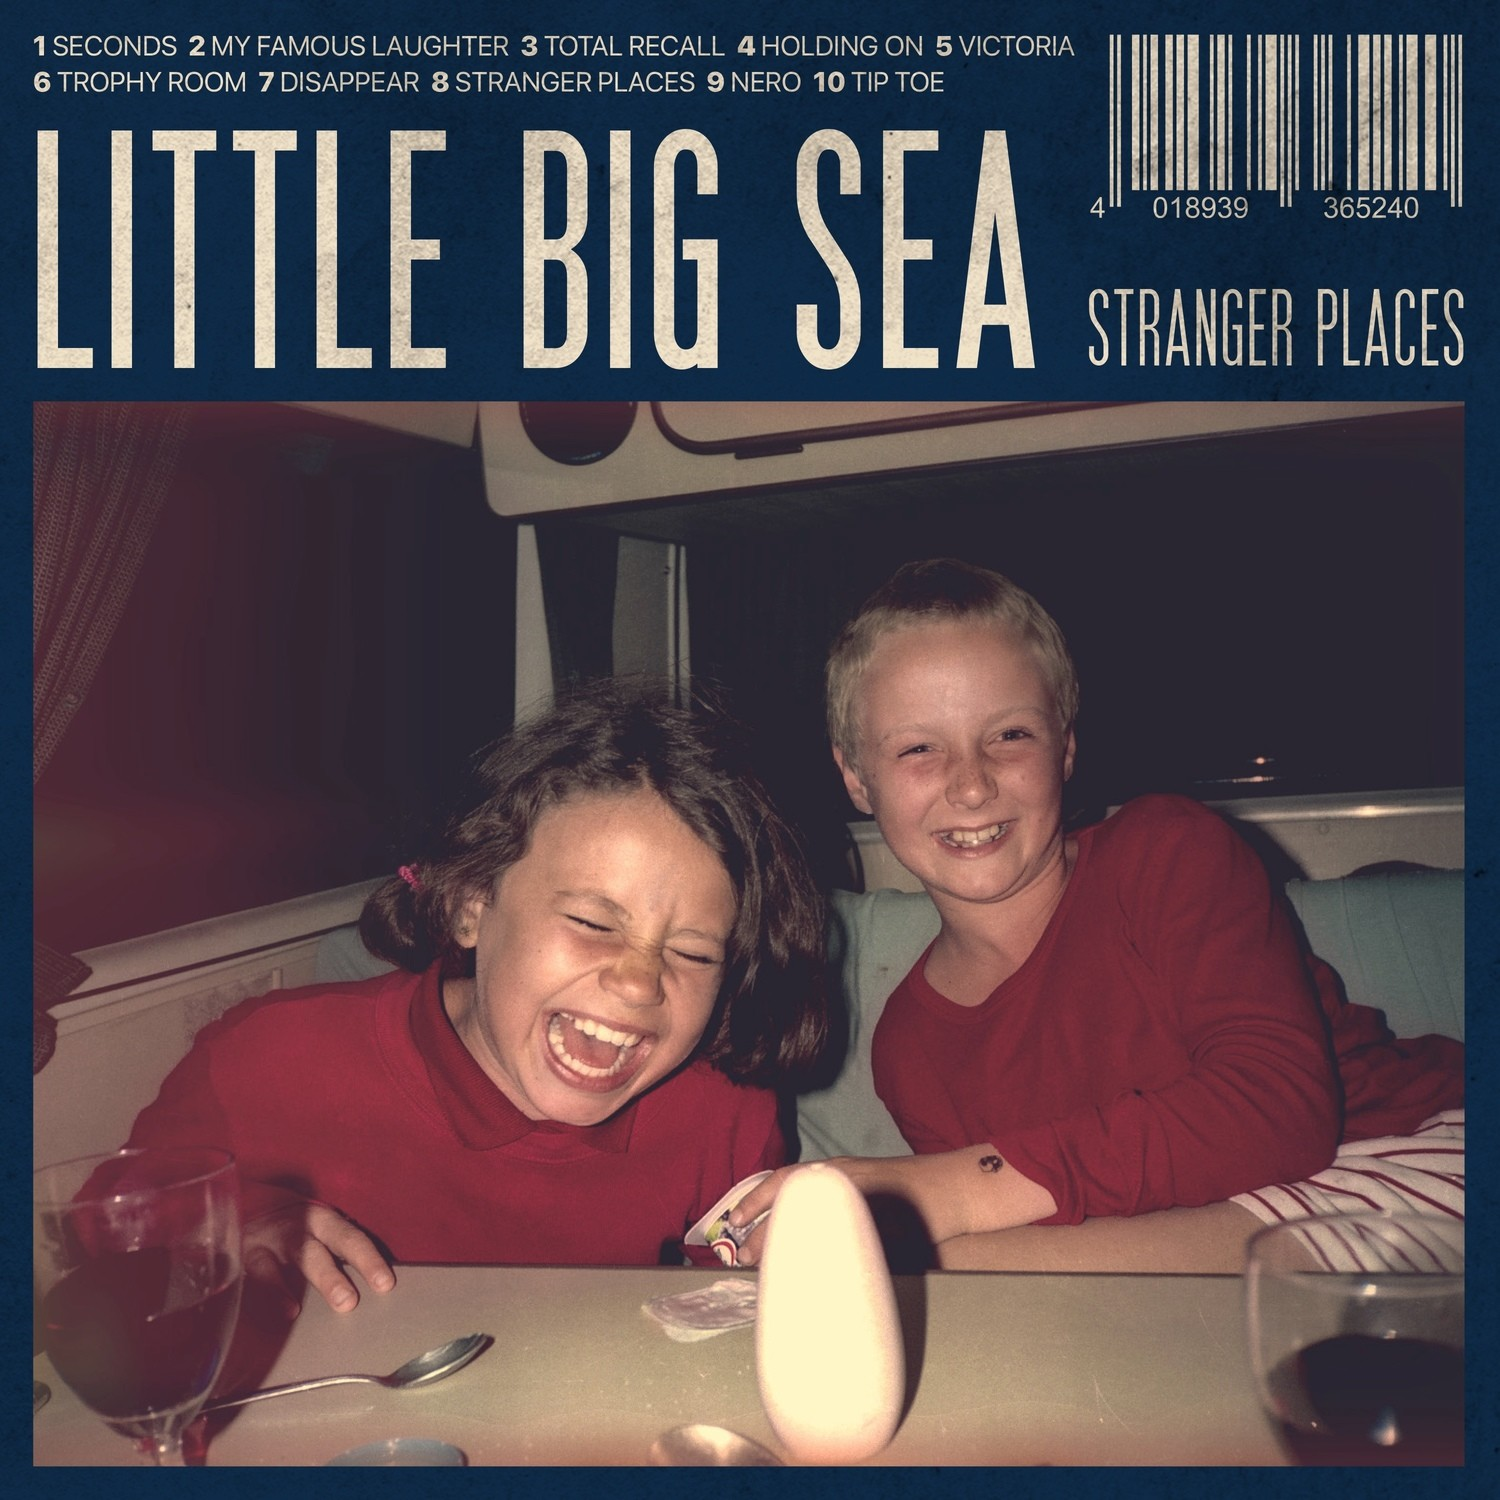 Little Big Sea